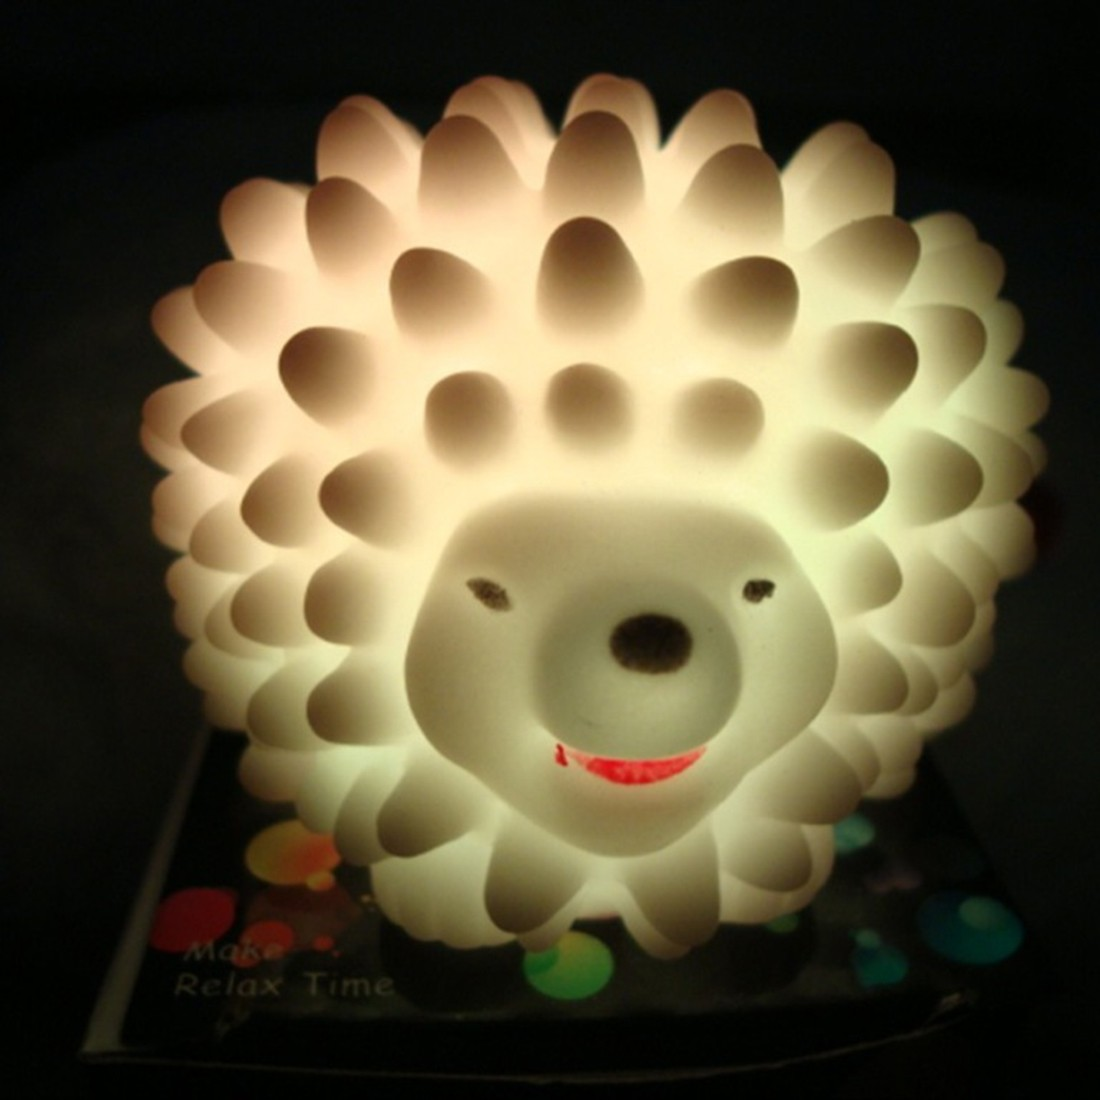 LED Hedgehog Night Light Lamp Desk Lamp Changeable-color Christmas Present Baby Light Home LED Bedside Light Lamp